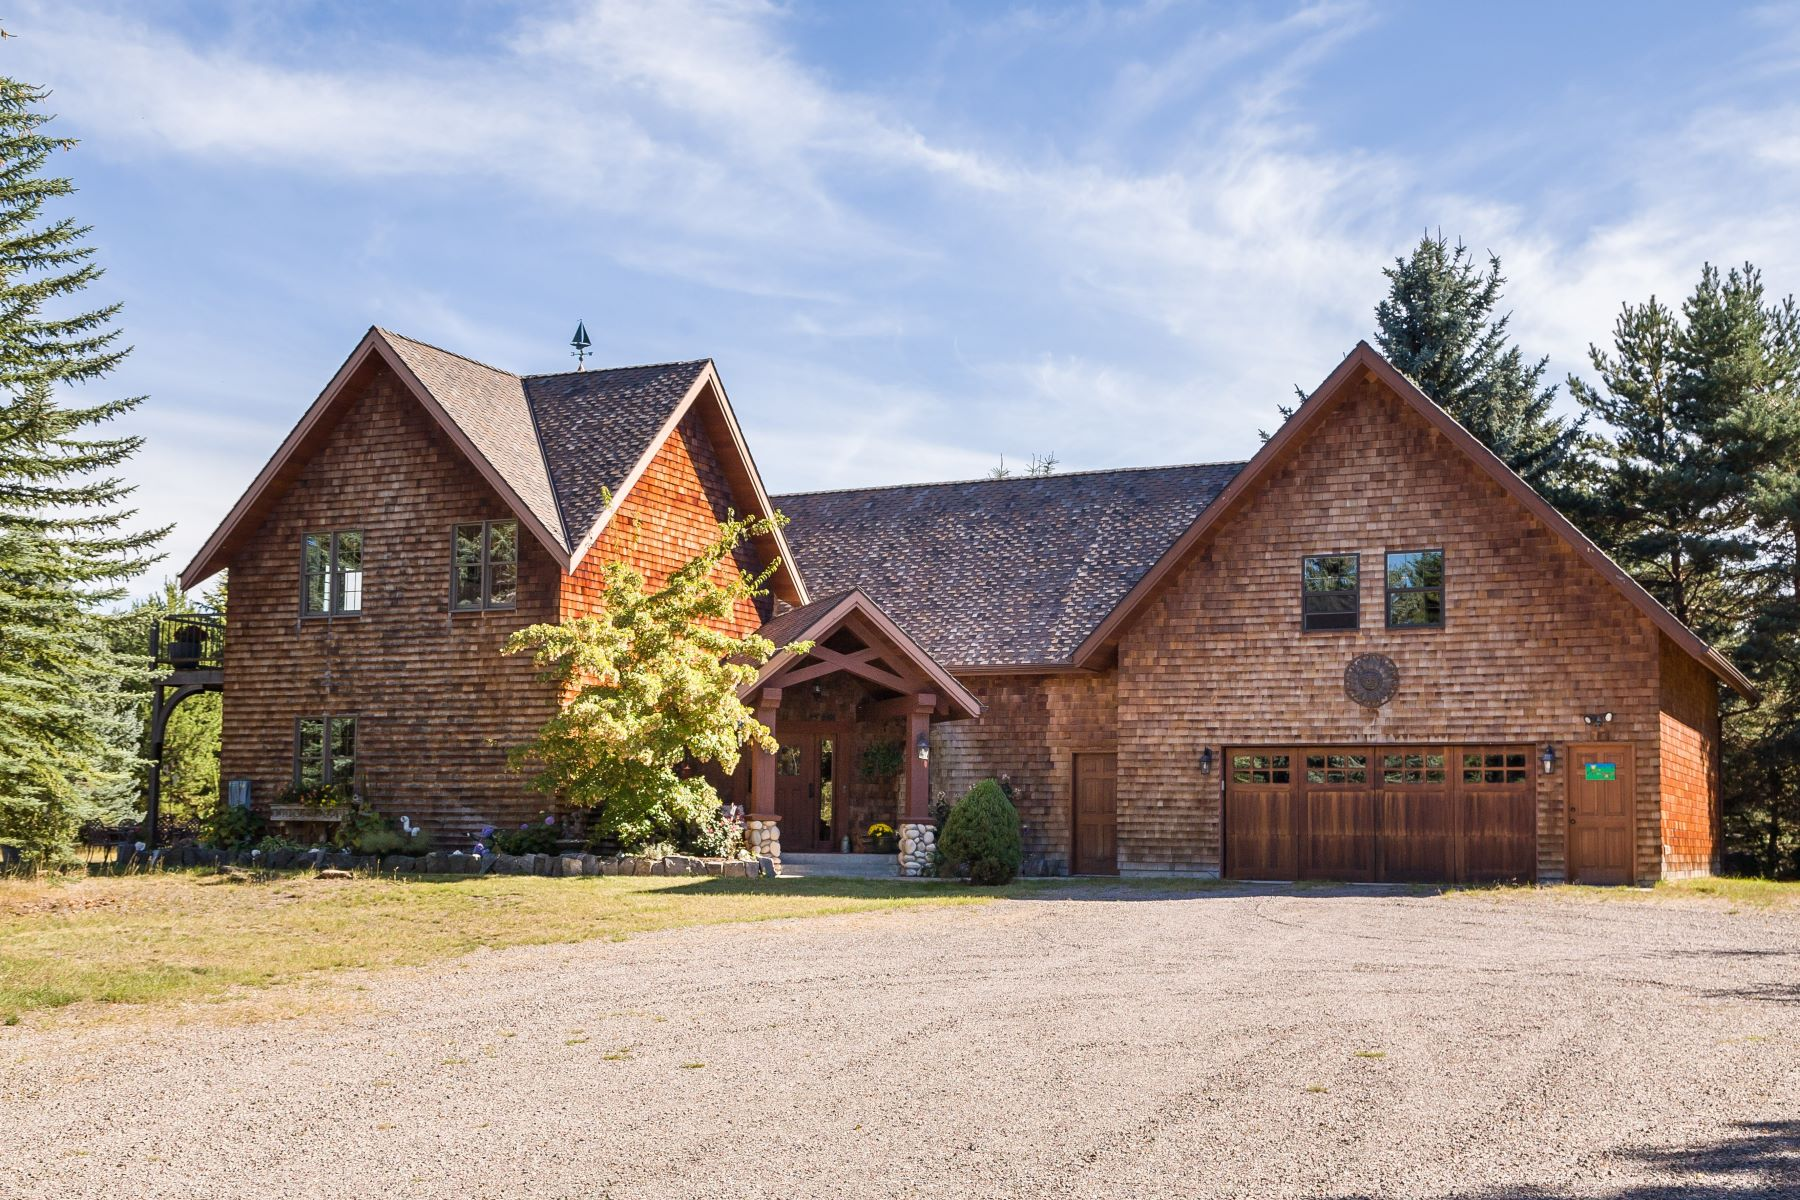 Single Family Home for Sale at 1310 Mccaffery Rd , Bigfork, MT 59911 1310 Mccaffery Rd Bigfork, Montana 59911 United States